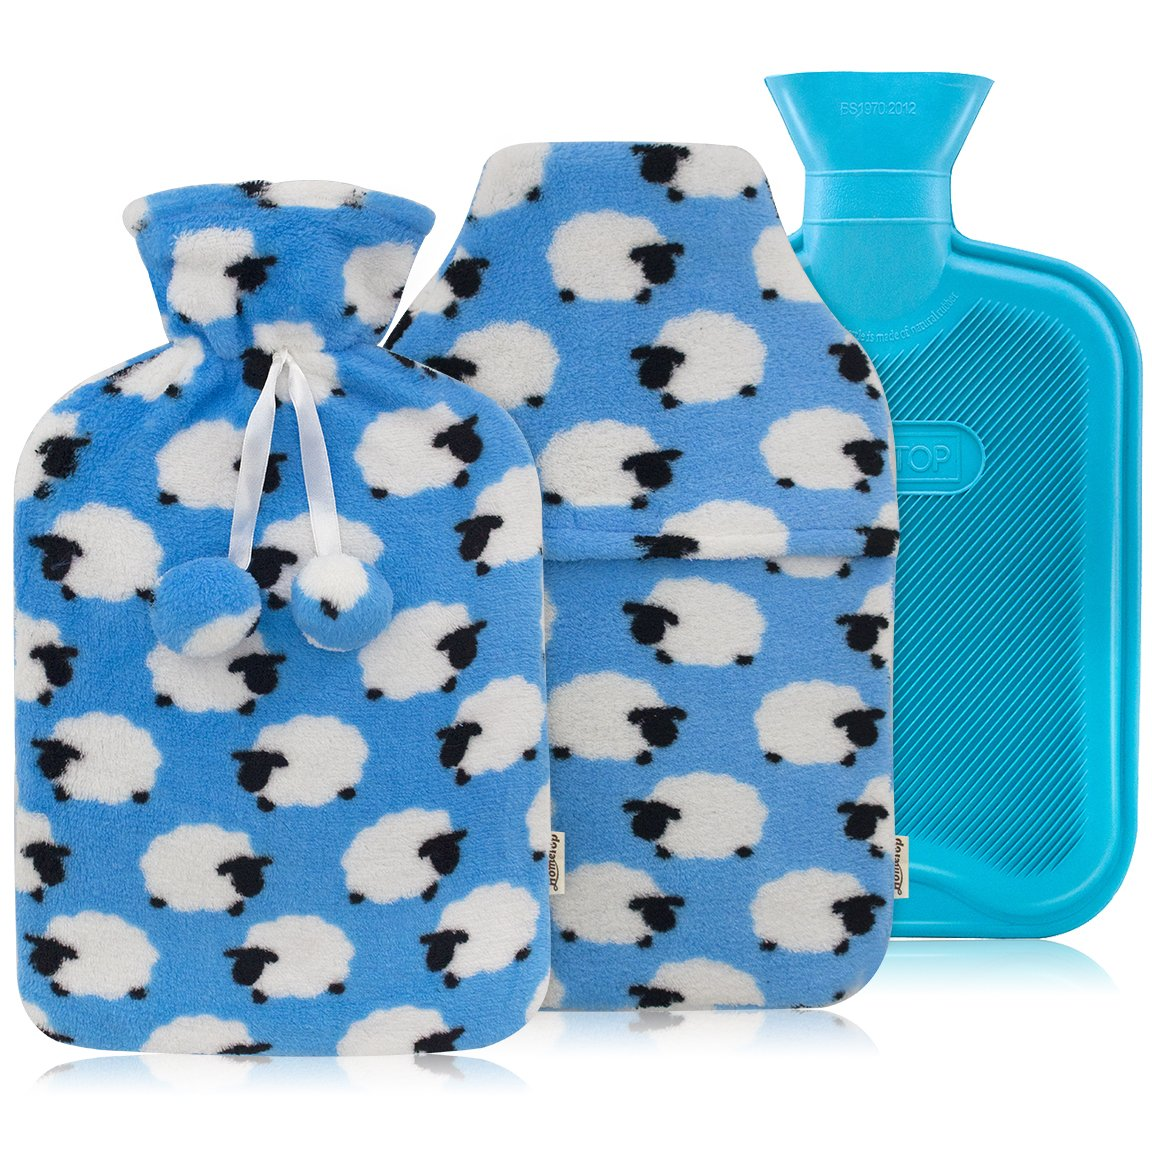 HomeTop Premium Classic Rubber Hot or Cold Water Bottle with Soft Fleece Cover (2 Liters, Blue/Blue Sheep Envelope Cover + Regular Cover)